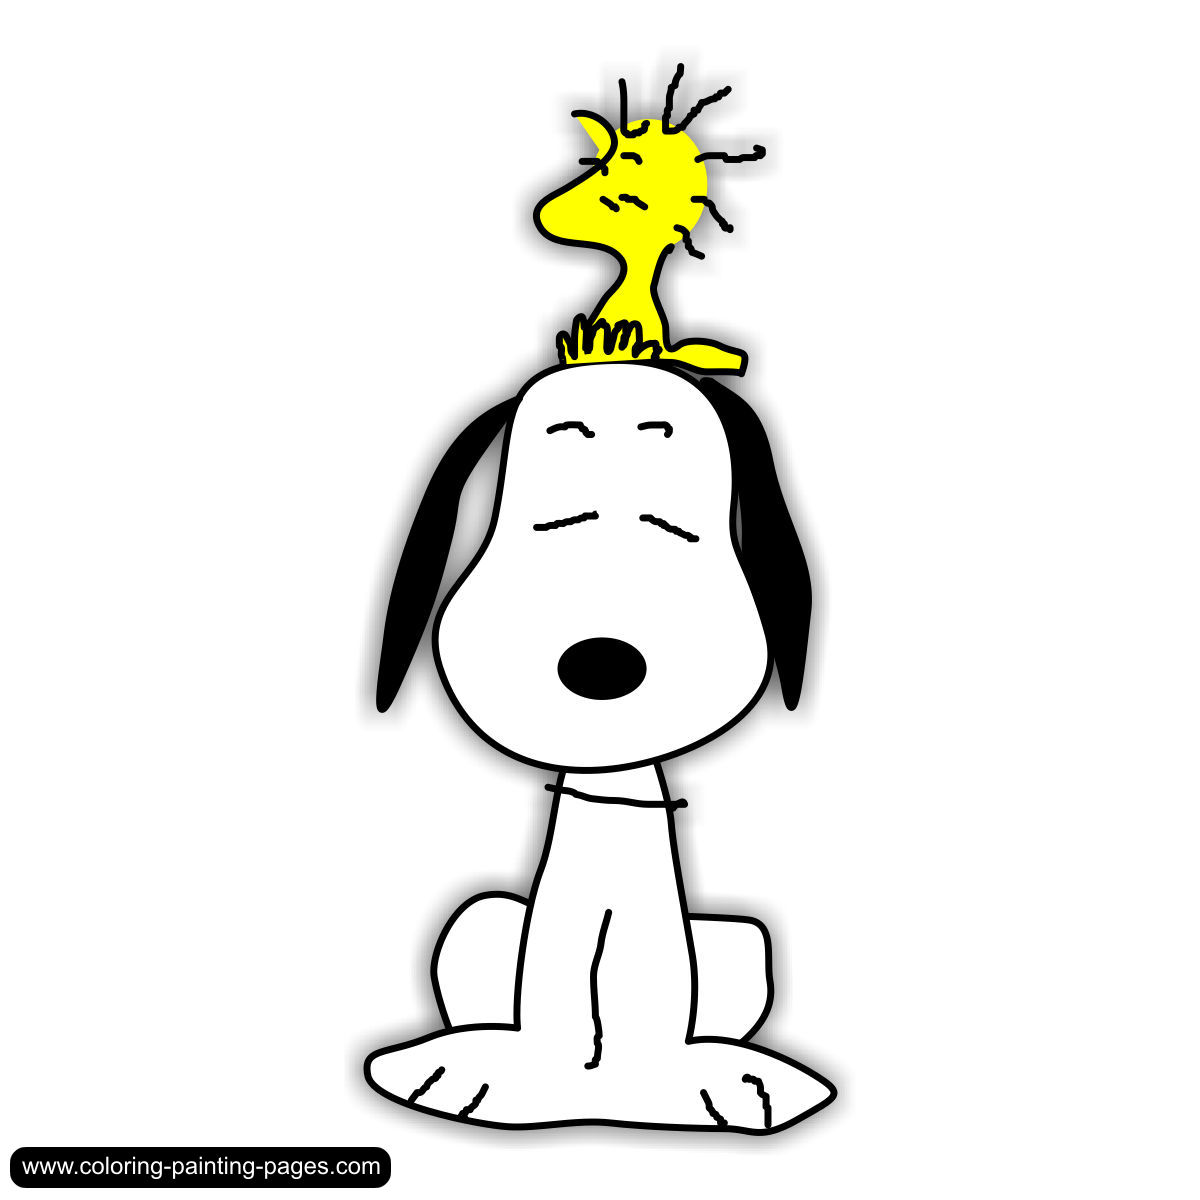 64+ snoopy clipart | clipartlook